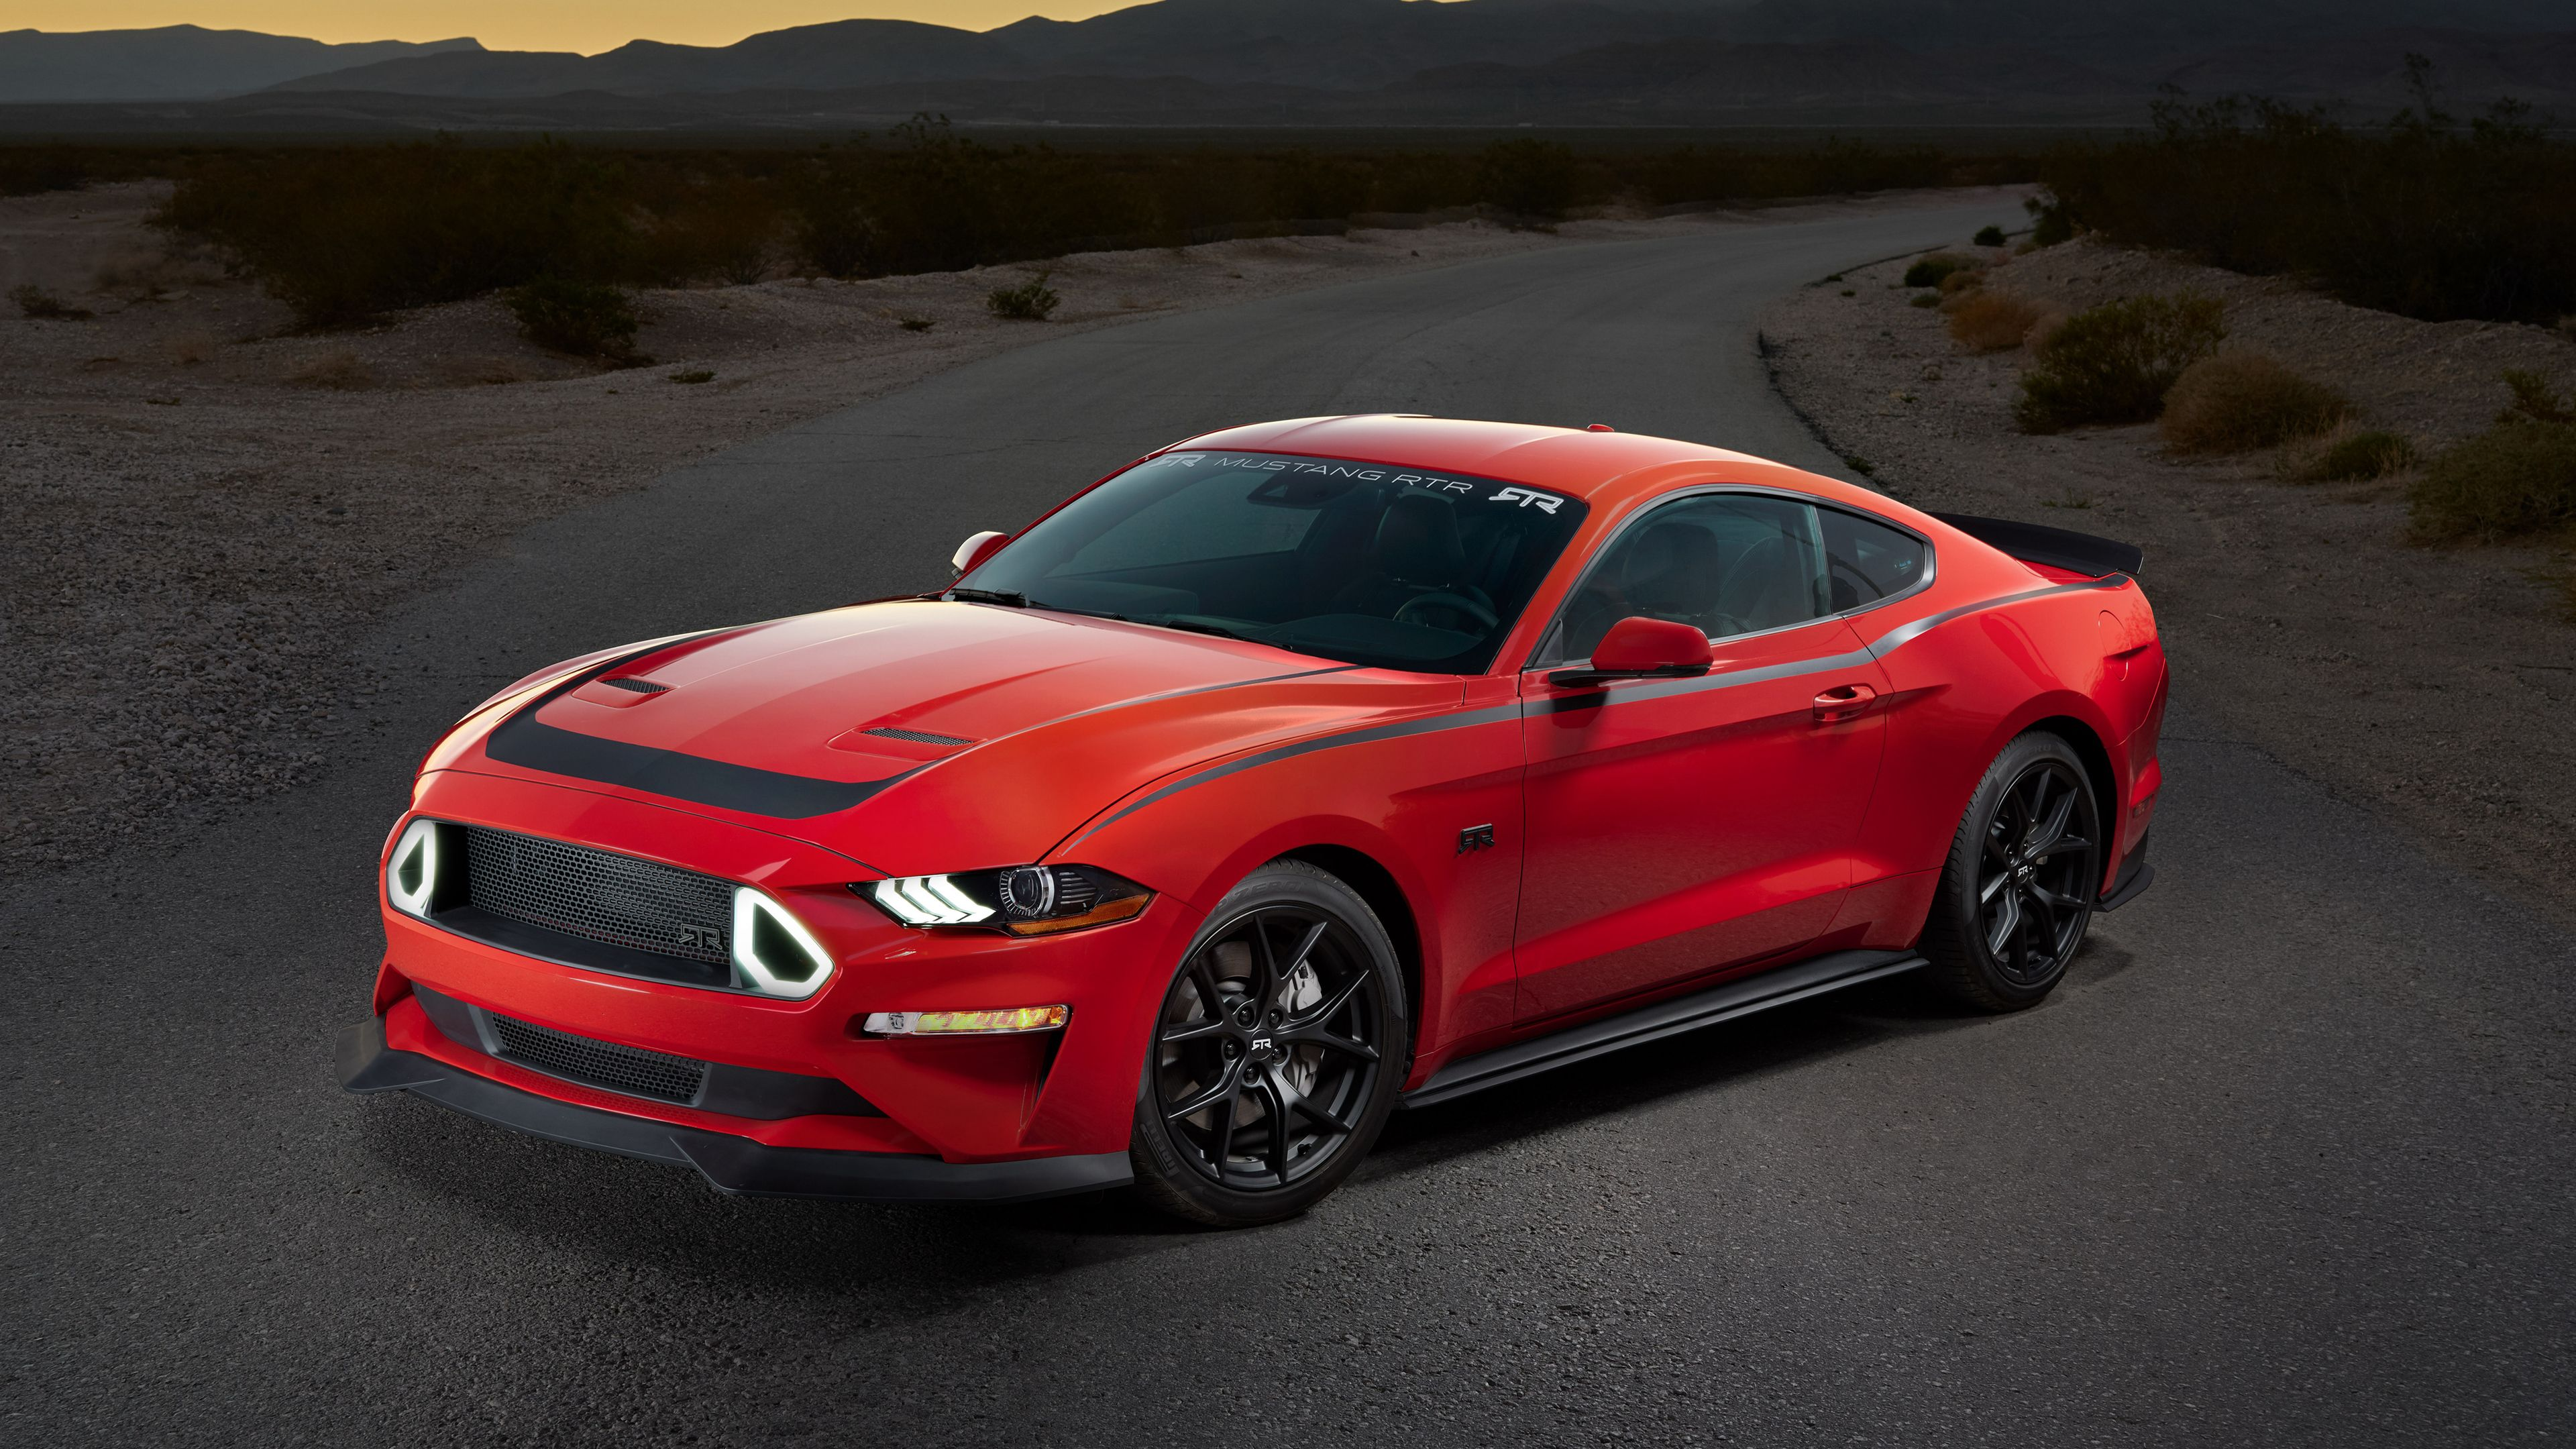 2019 Ford Series 1 Mustang Rtr Mustang Wallpapers Hd Wallpapers